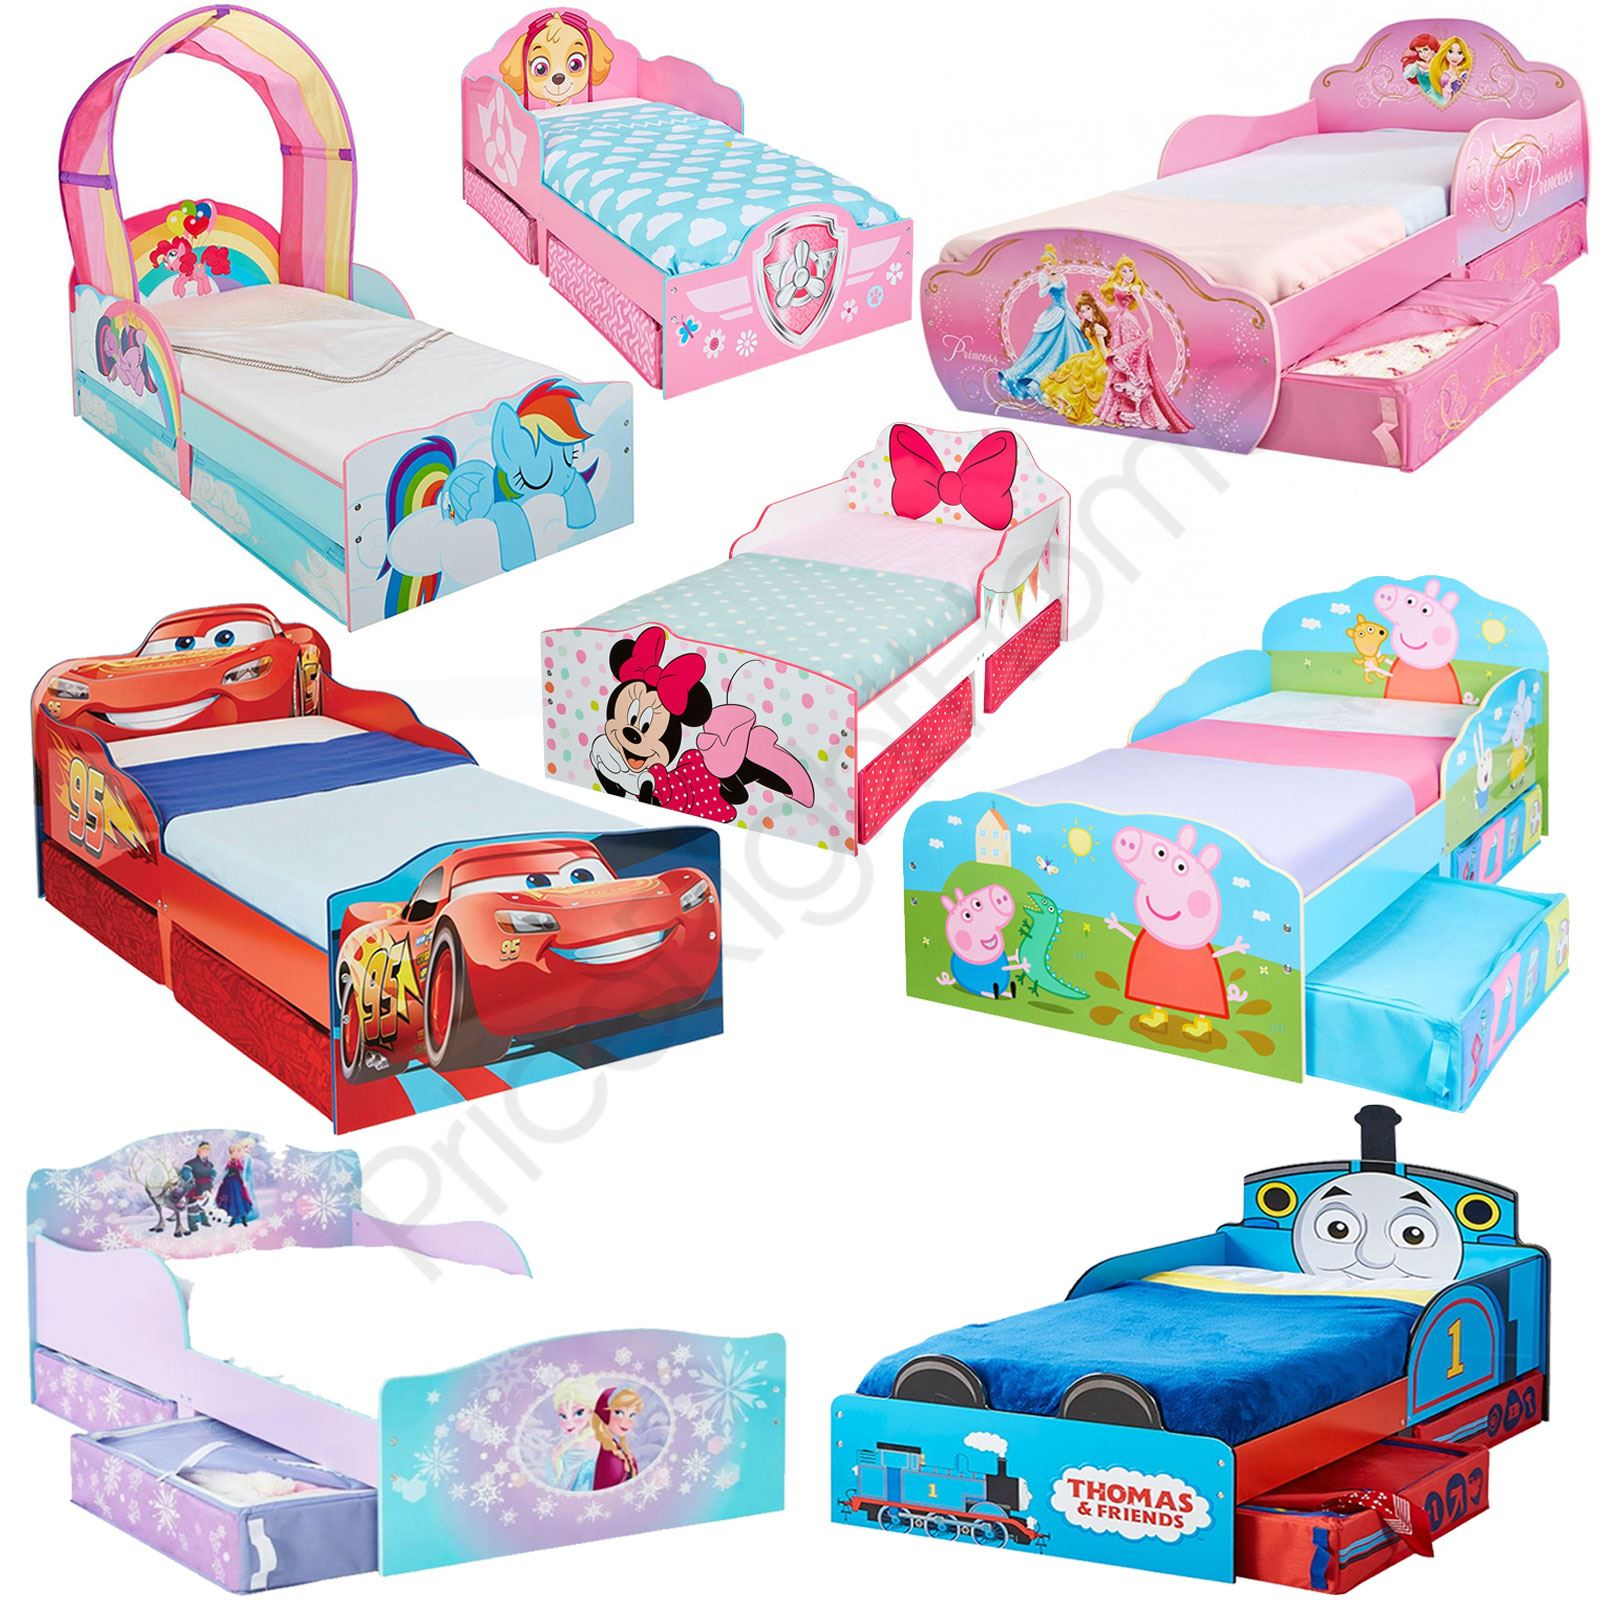 disney toddler bed with storage mattress cars peppa 17528 | e859e945 c253 44f5 9581 87b260204dd4